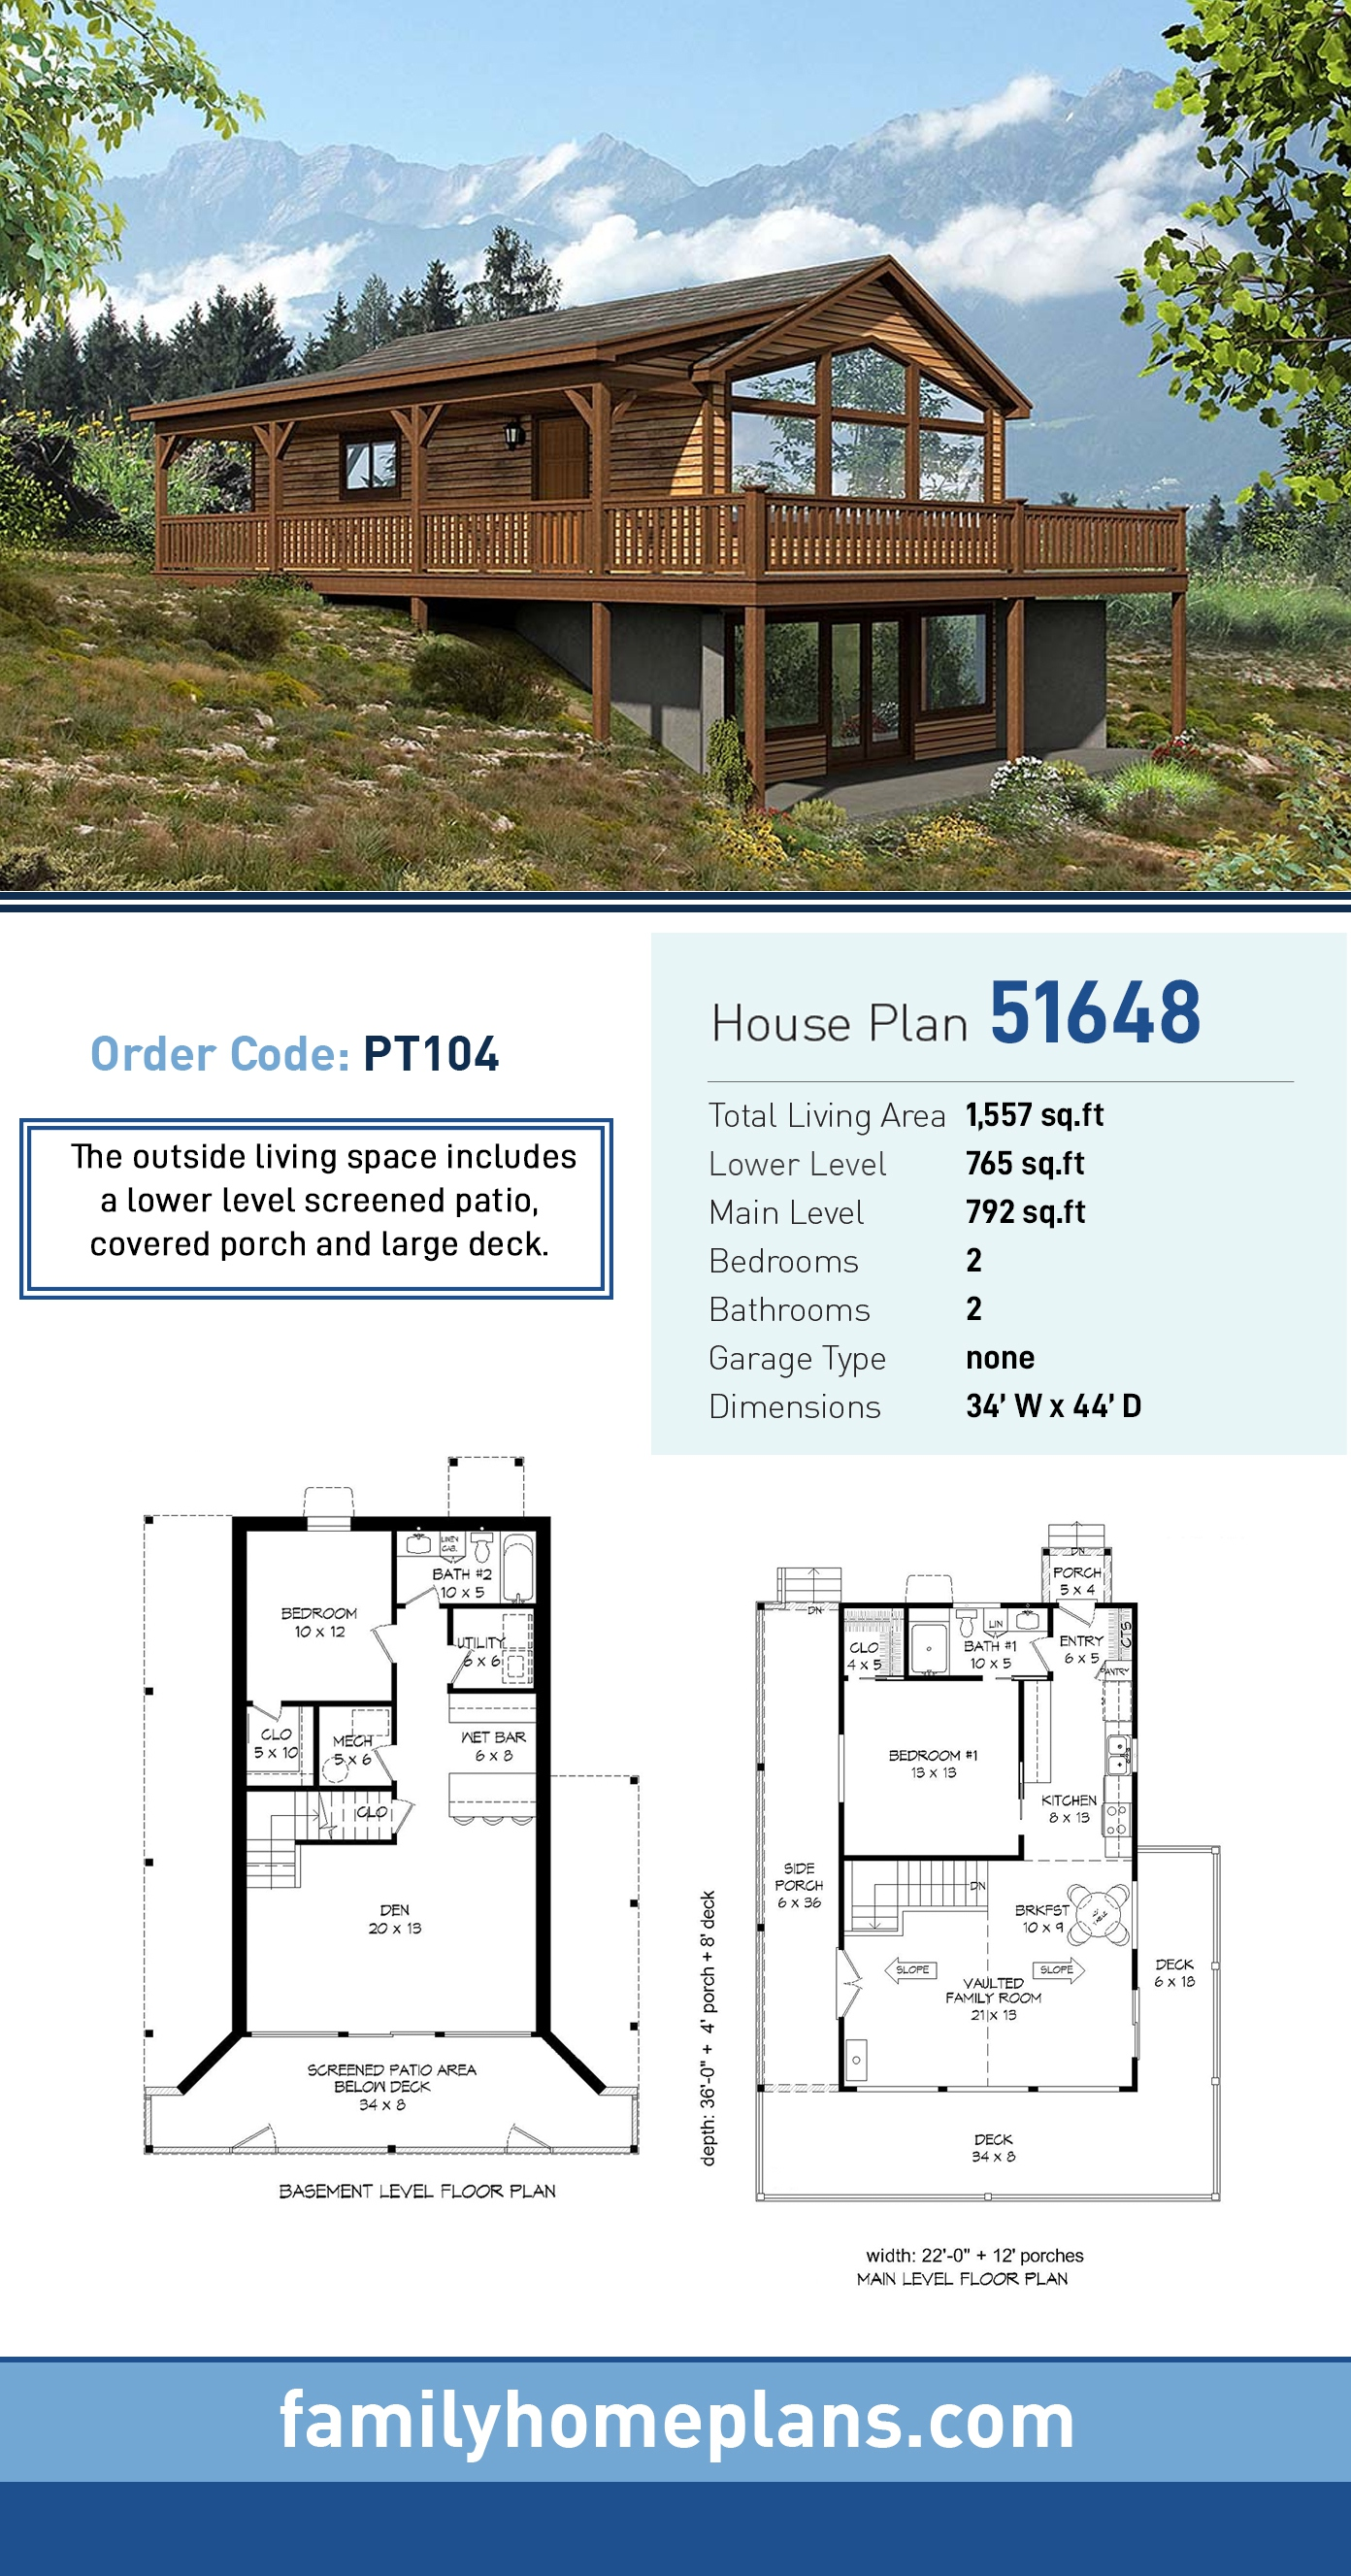 Cabin, Contemporary, Country, Traditional House Plan 51648 with 2 Beds, 2 Baths